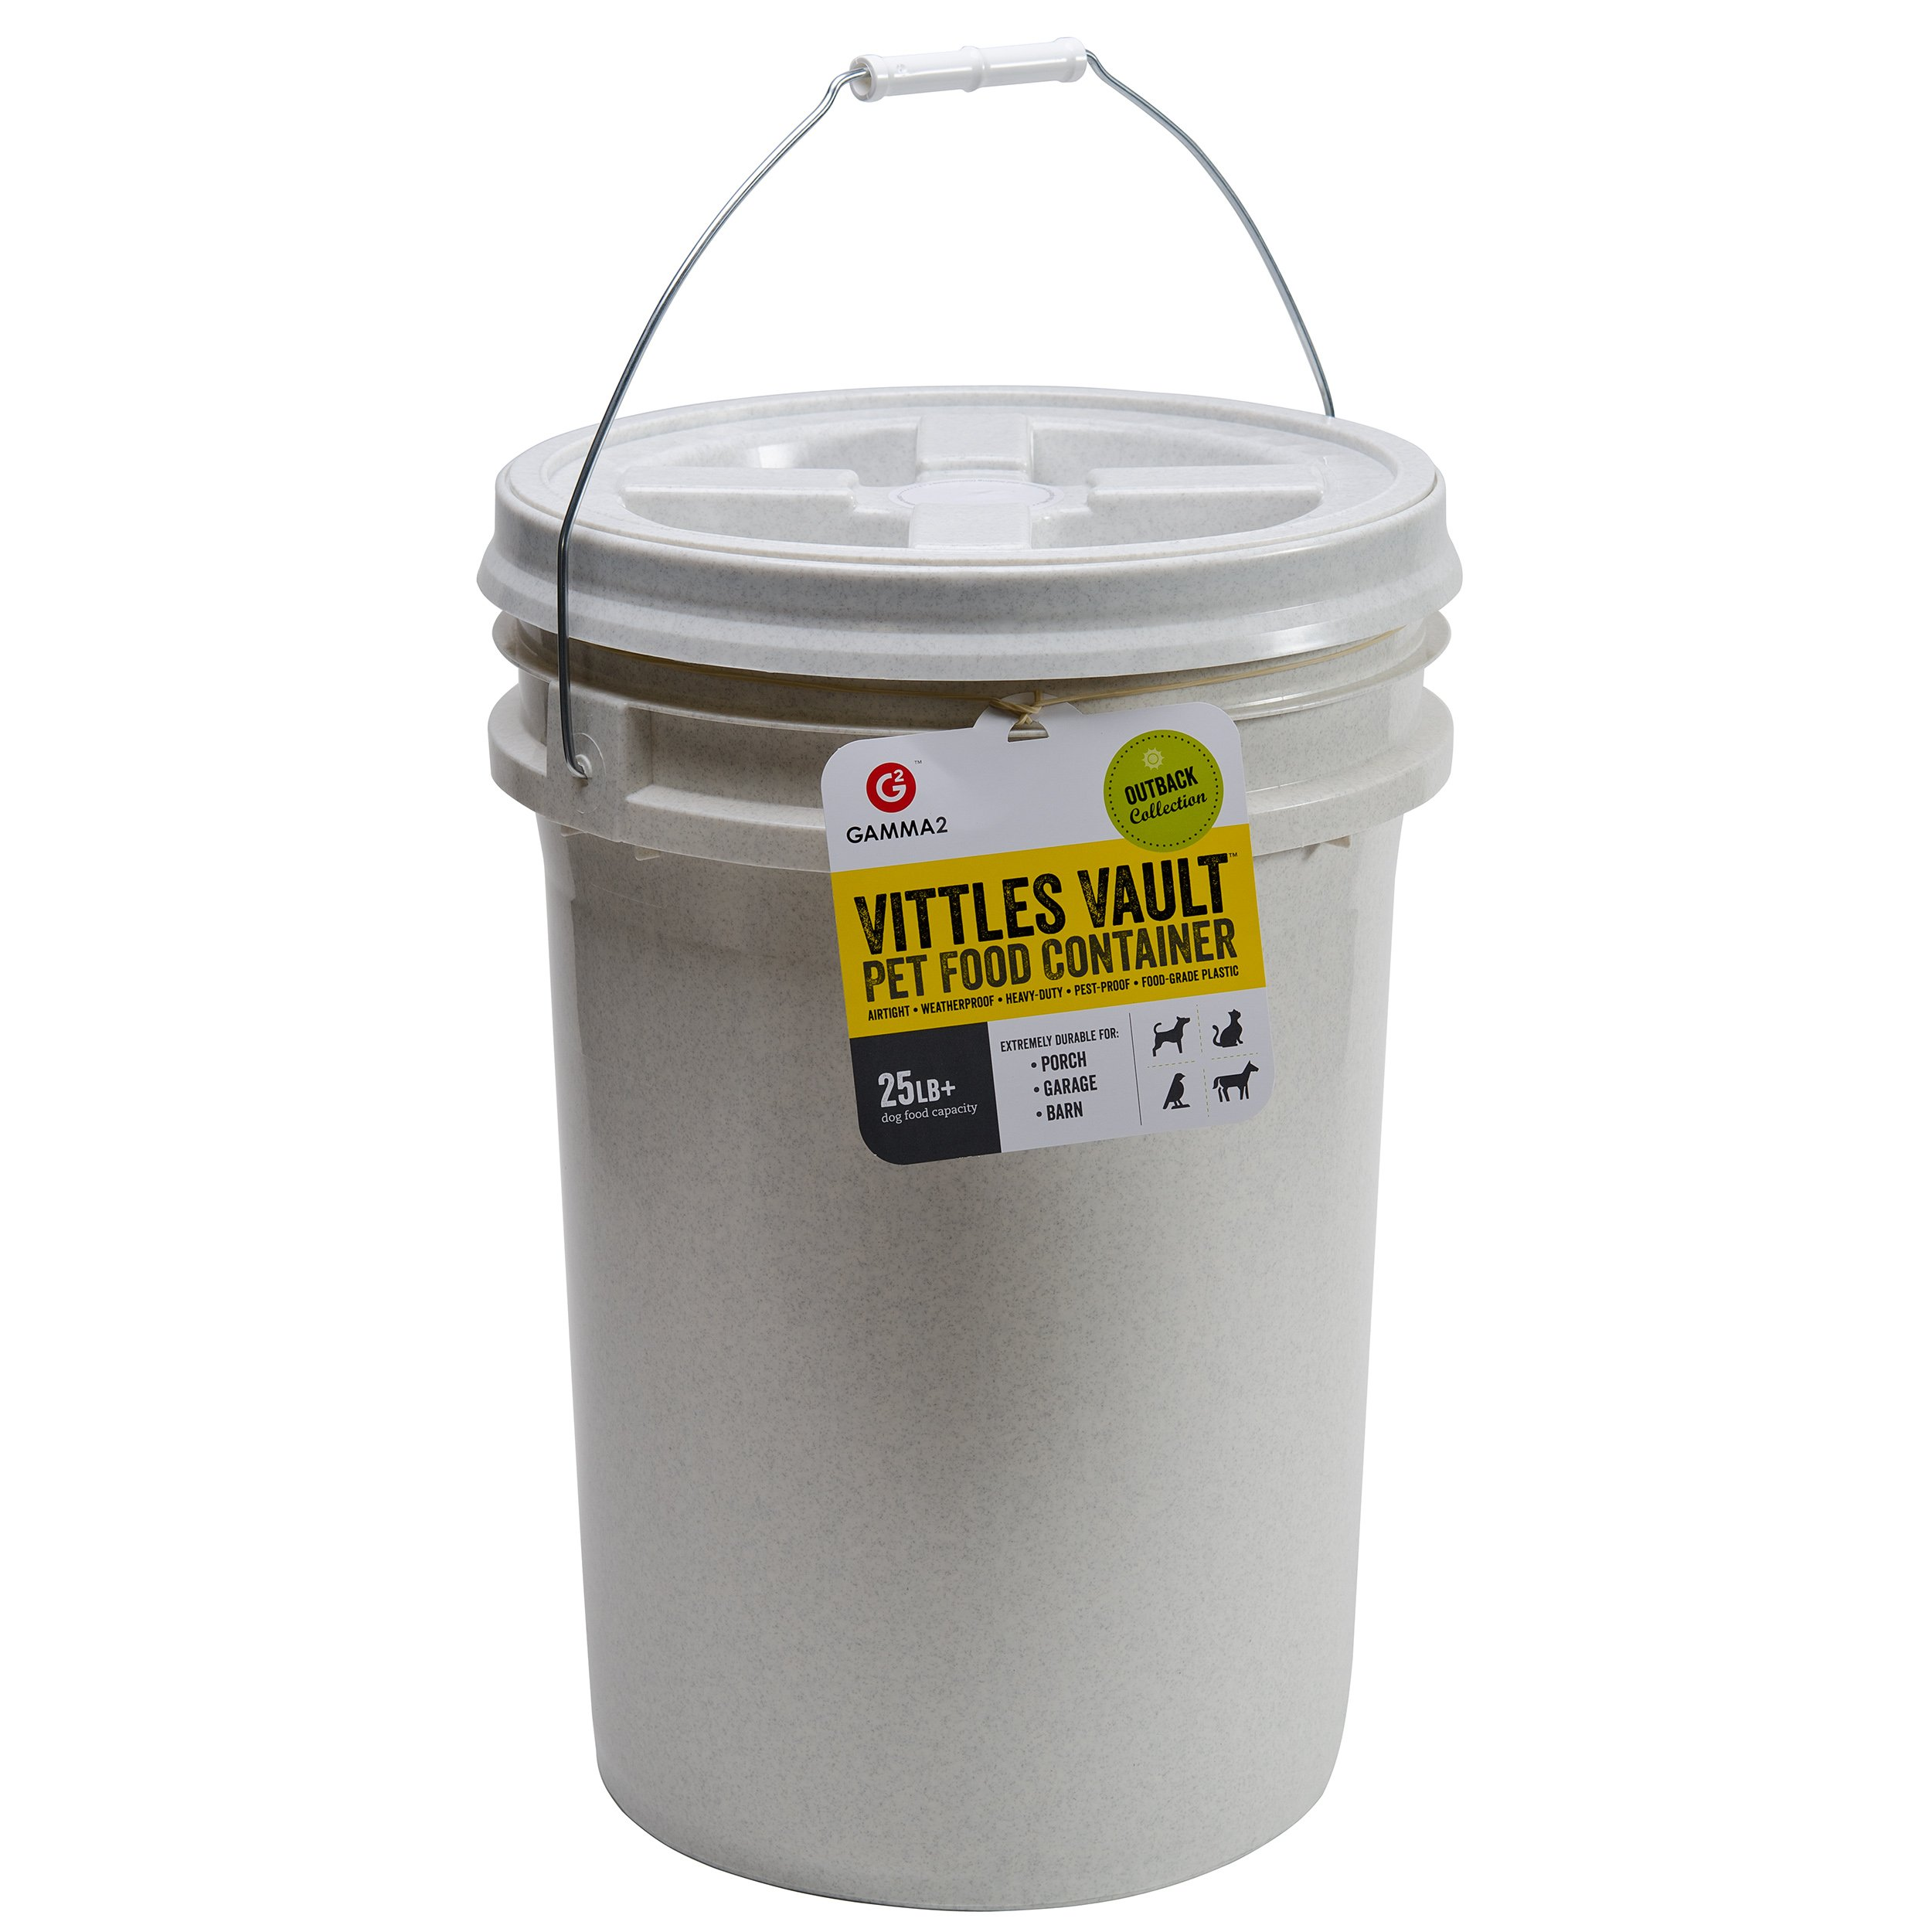 Gamma2 Vittles Vault 25 lb Airtight Bucket Container for Food Storage, Food Grade and BPA Free by Gamma2